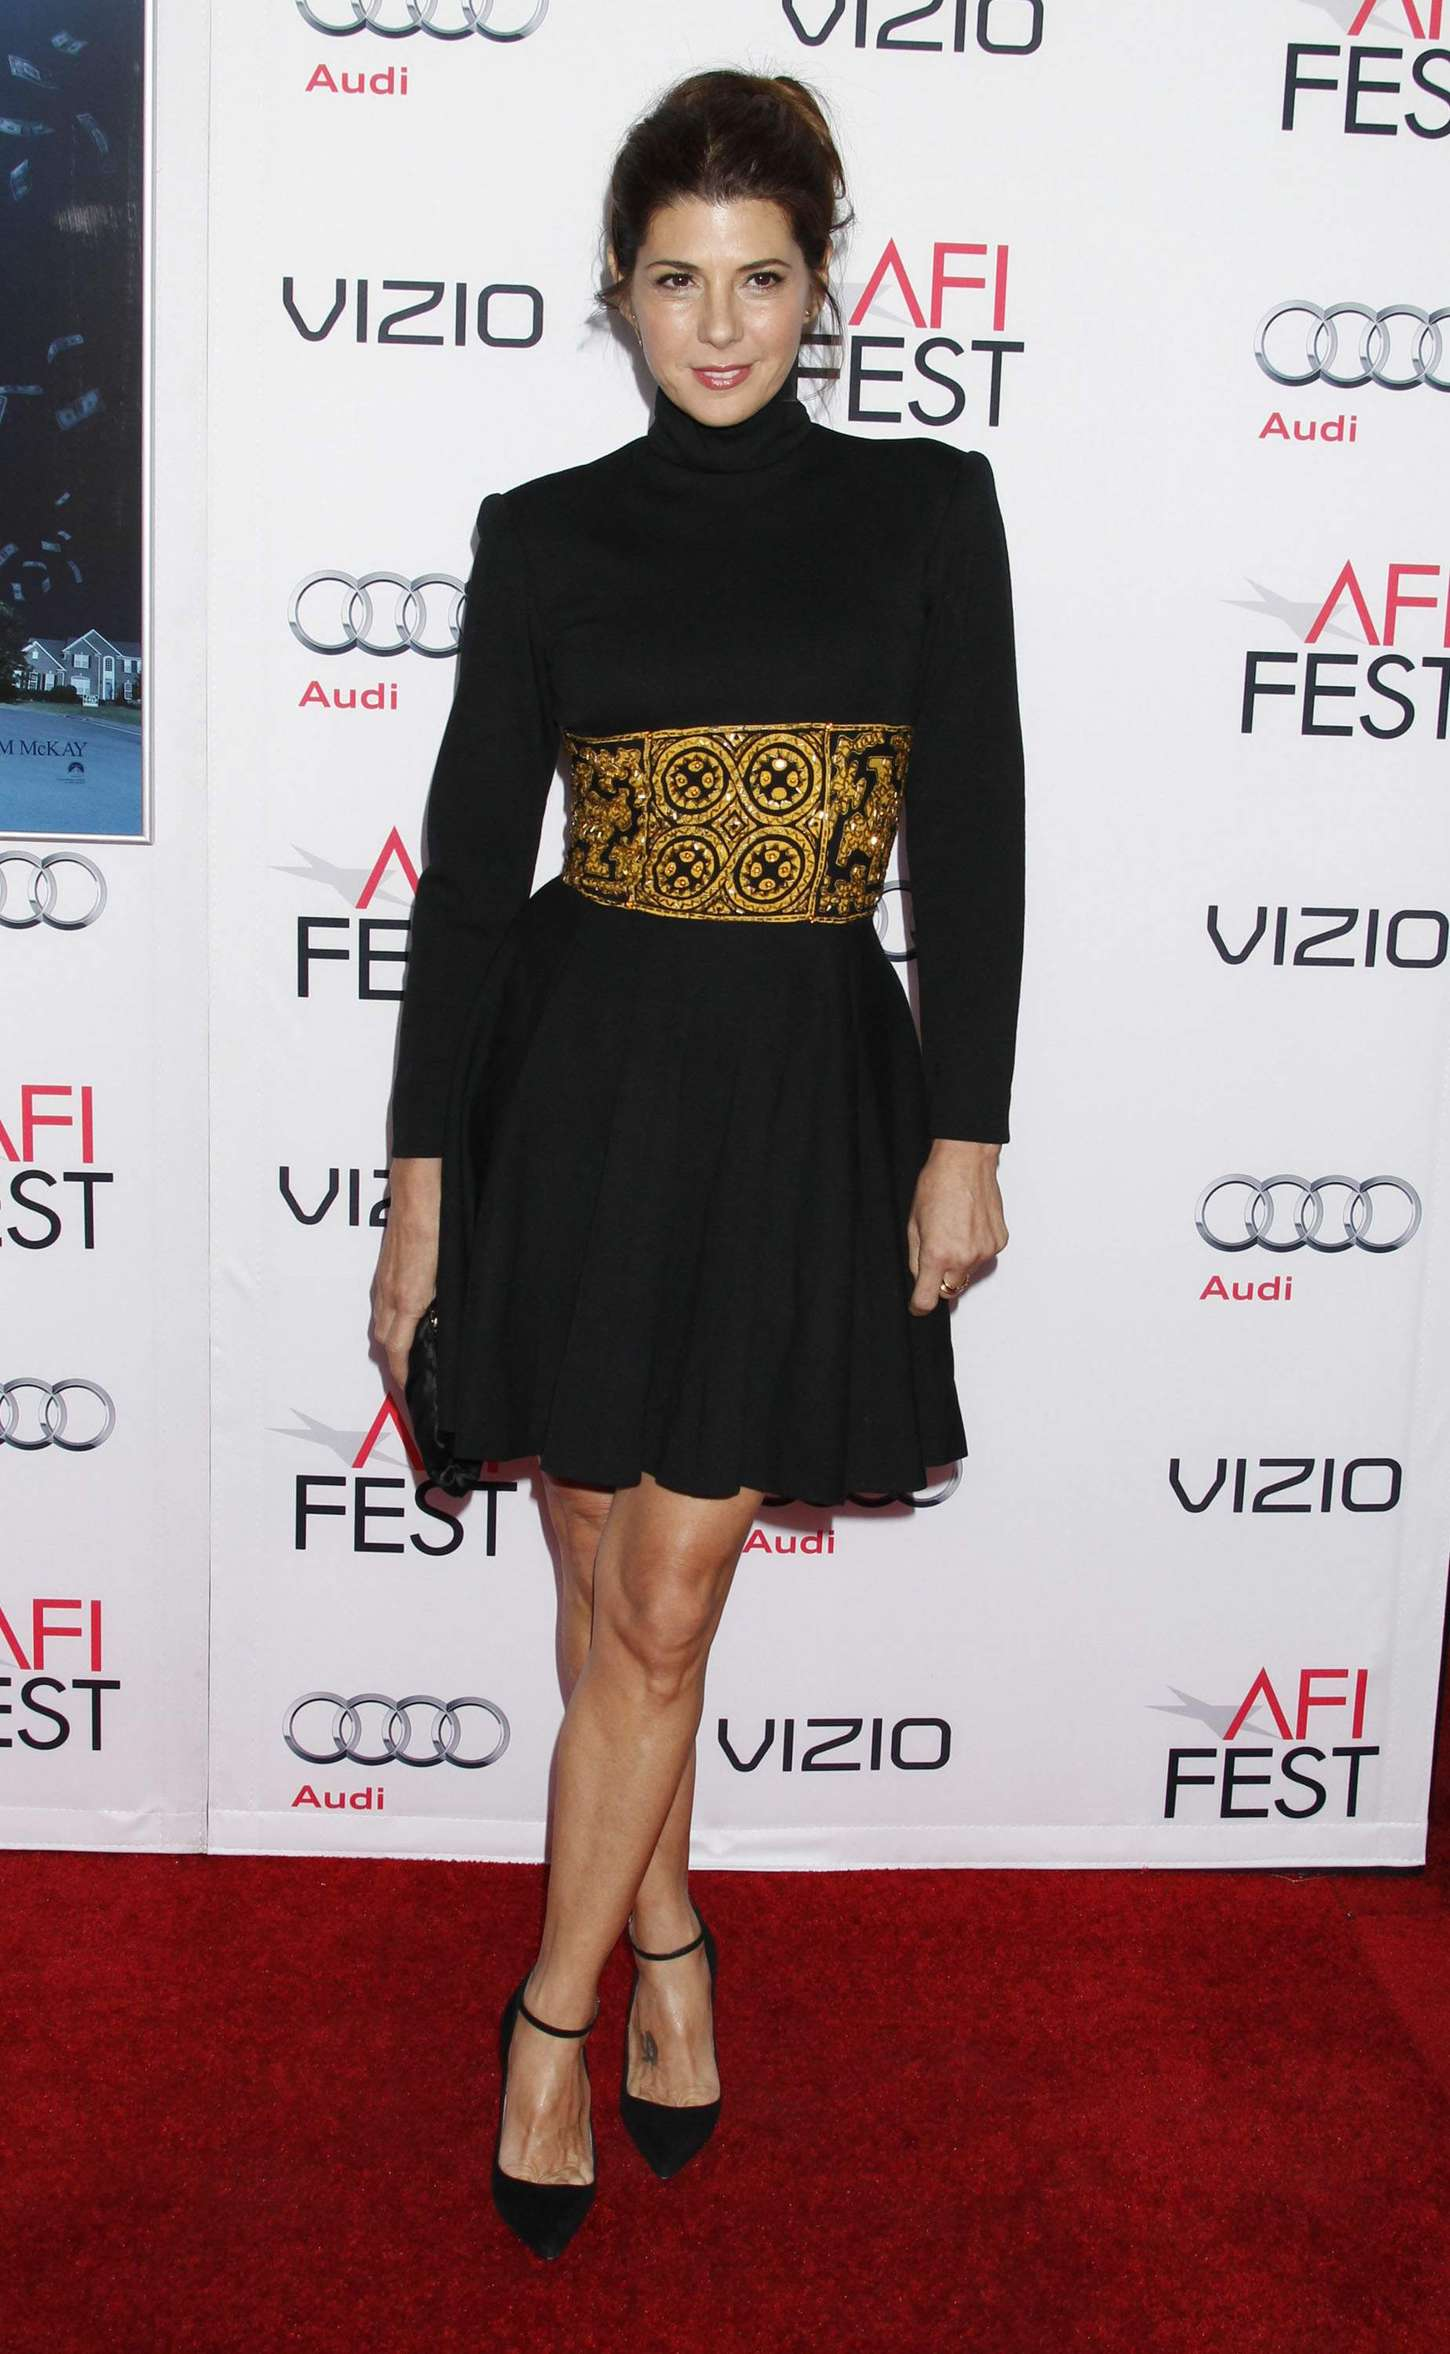 Marisa Tomei The Big Short Premiere at AFI Fest Closing Gala in Hollywood